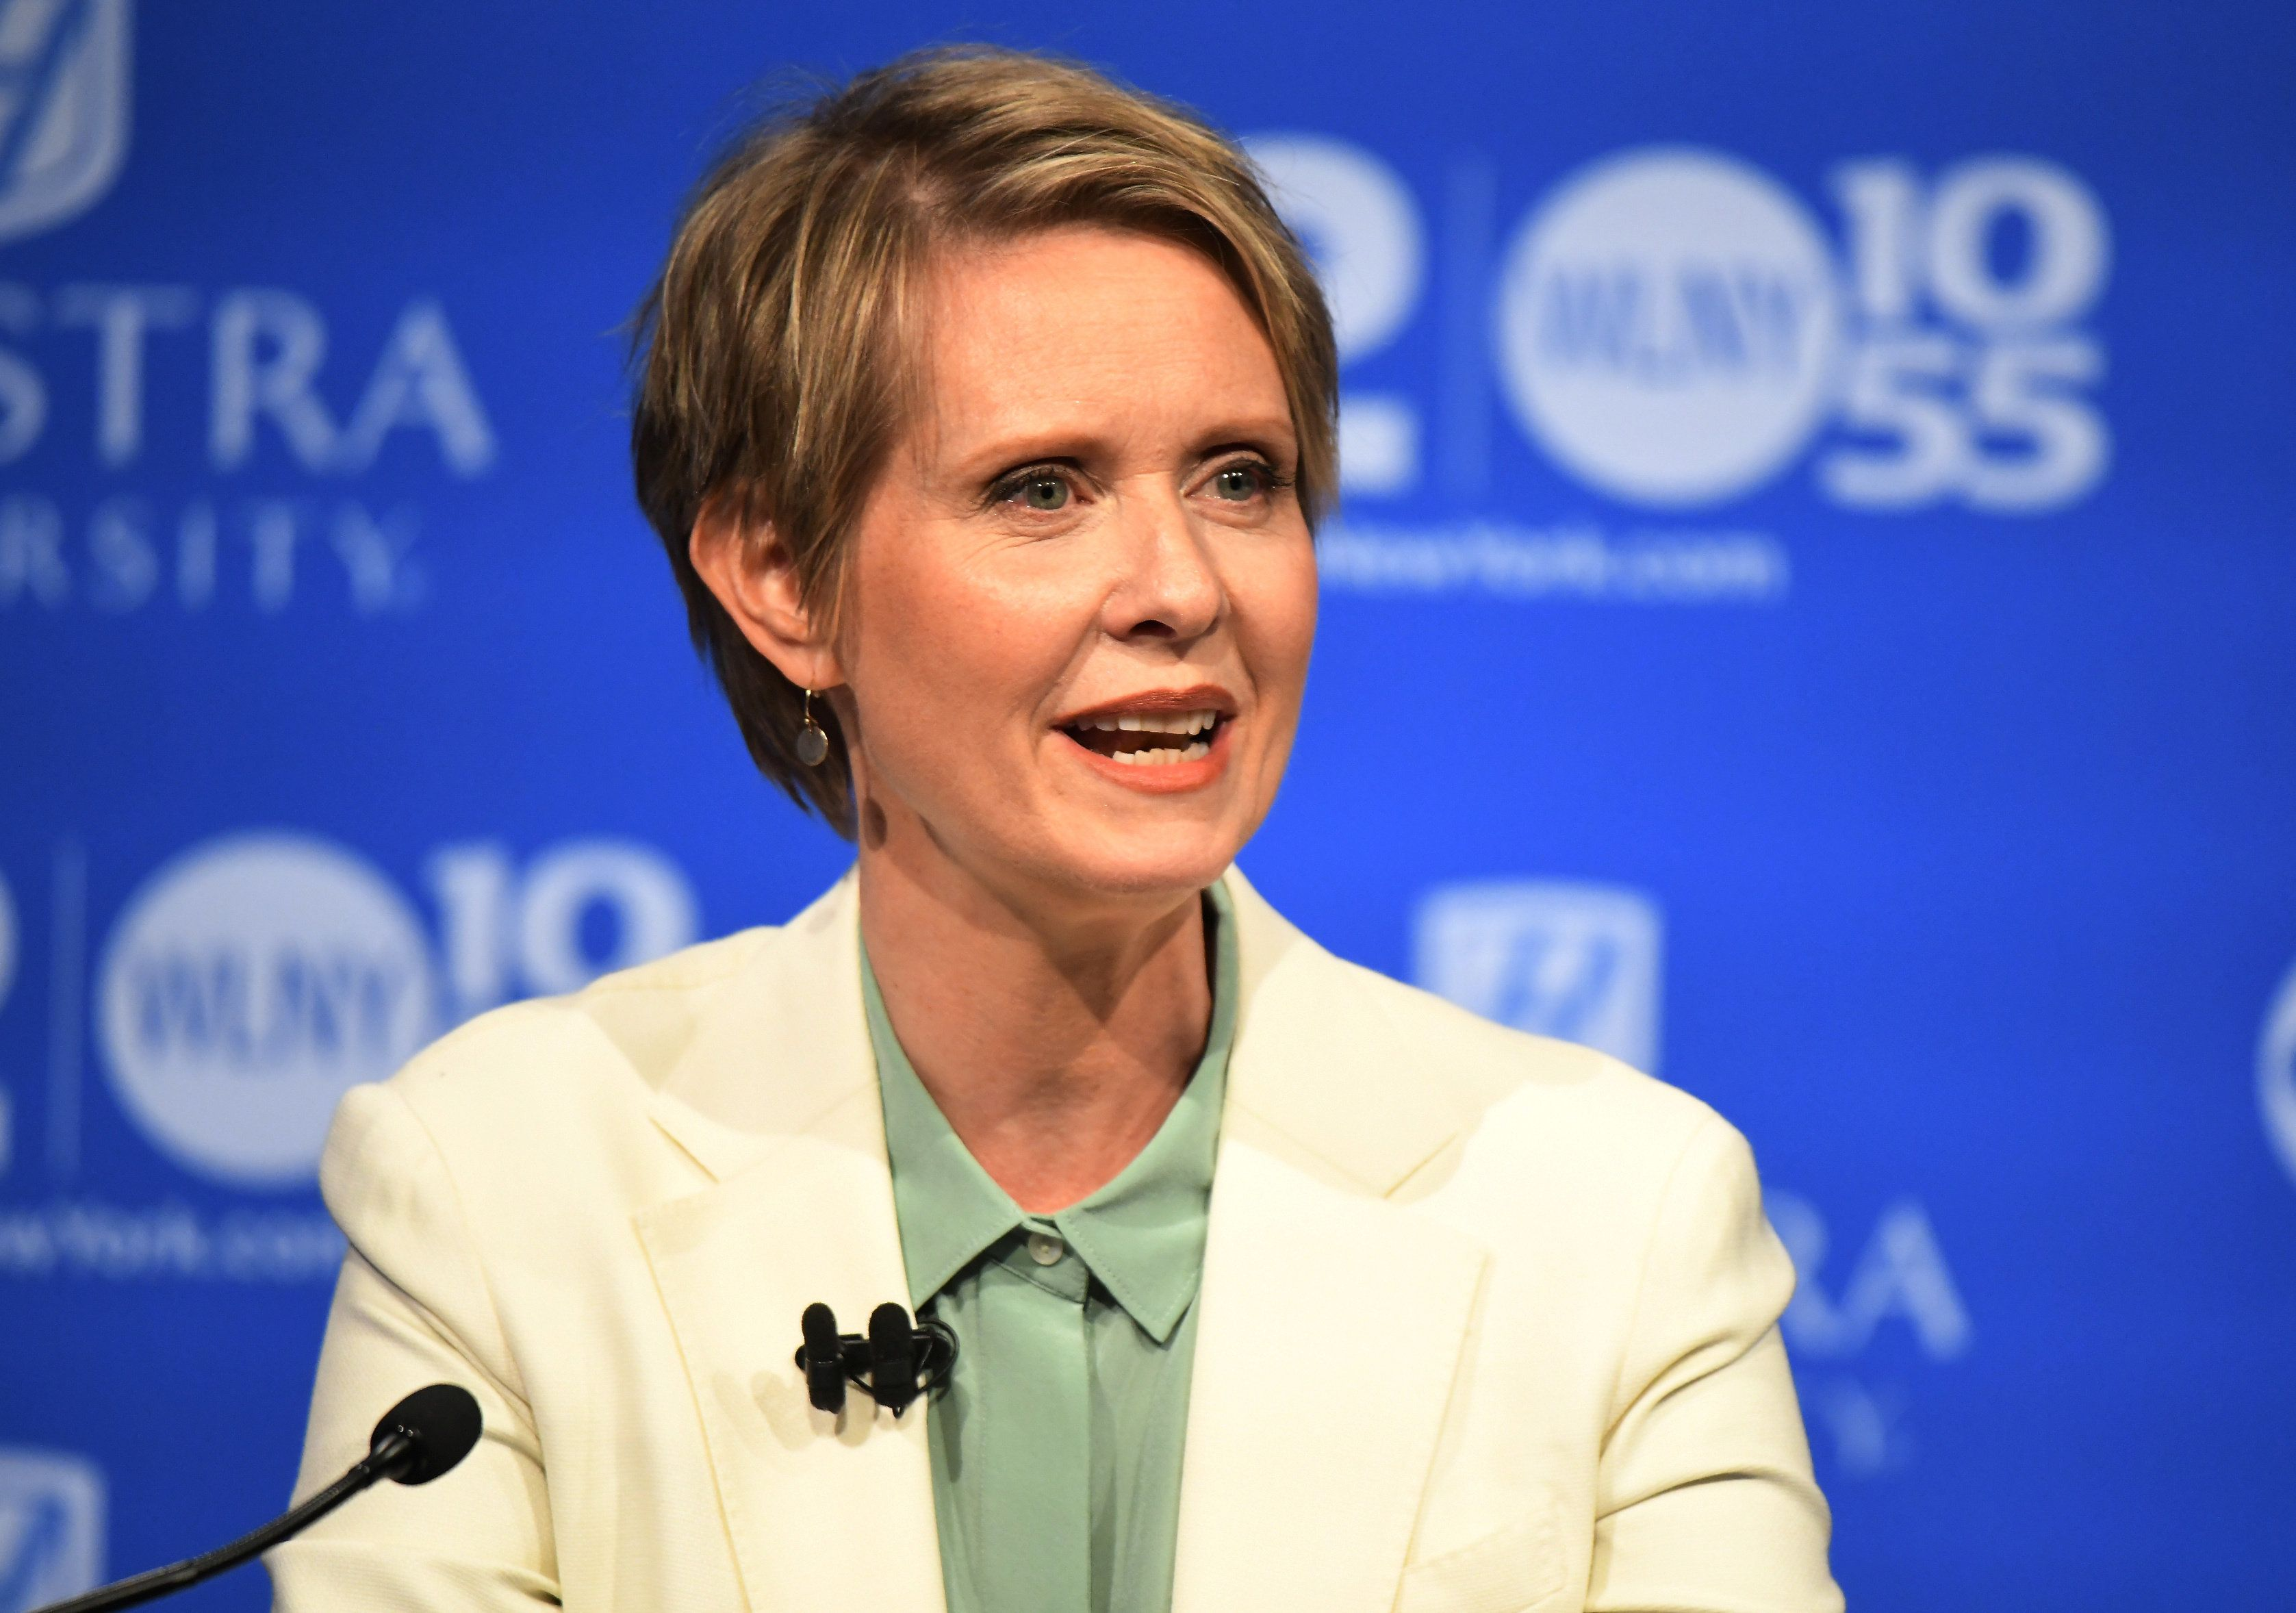 Cynthia Nixon speaks during New York's Democratic gubernatorial primary debate at Hofstra University last month.